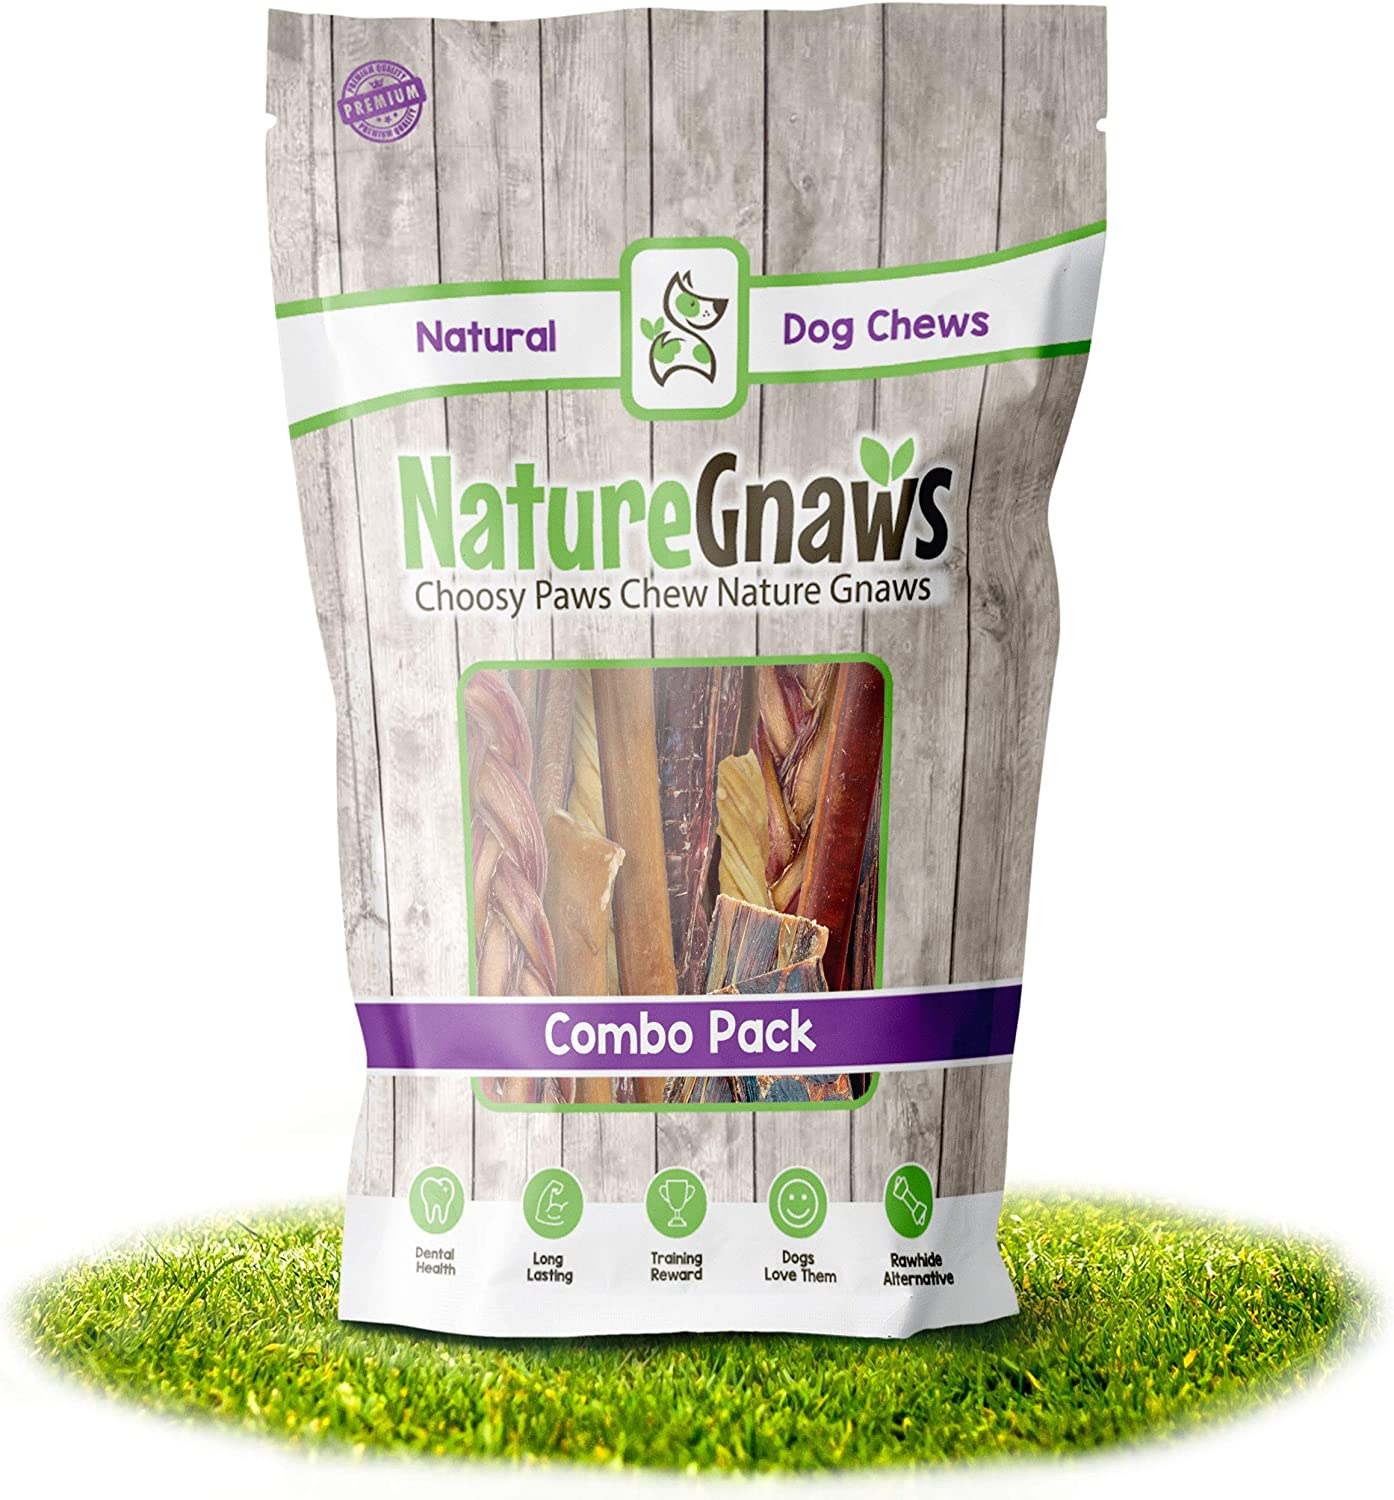 Nature Gnaws Dog Chews Variety Pack - Premium Natural Beef - Combo Bag of Bully Sticks, Tendons and Beef Jerky for Dogs - Rawhide Free (12 Count)